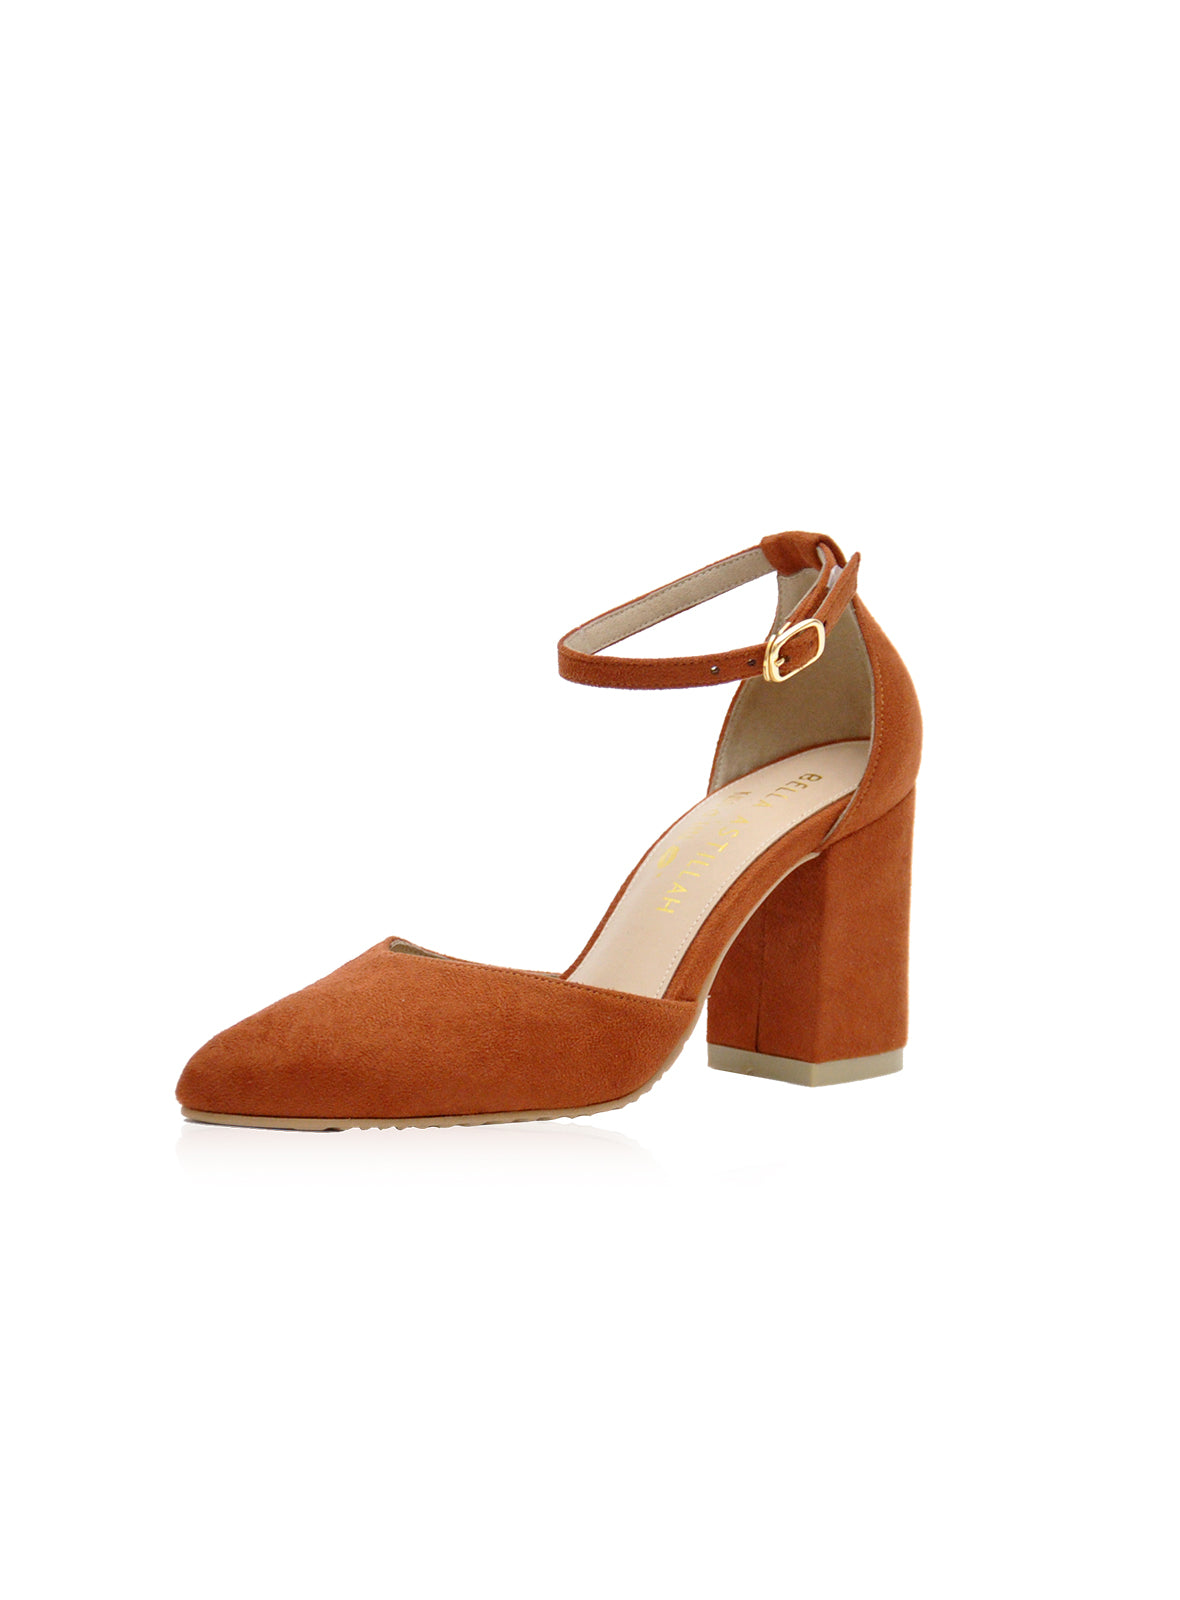 Belle Heels in Brown